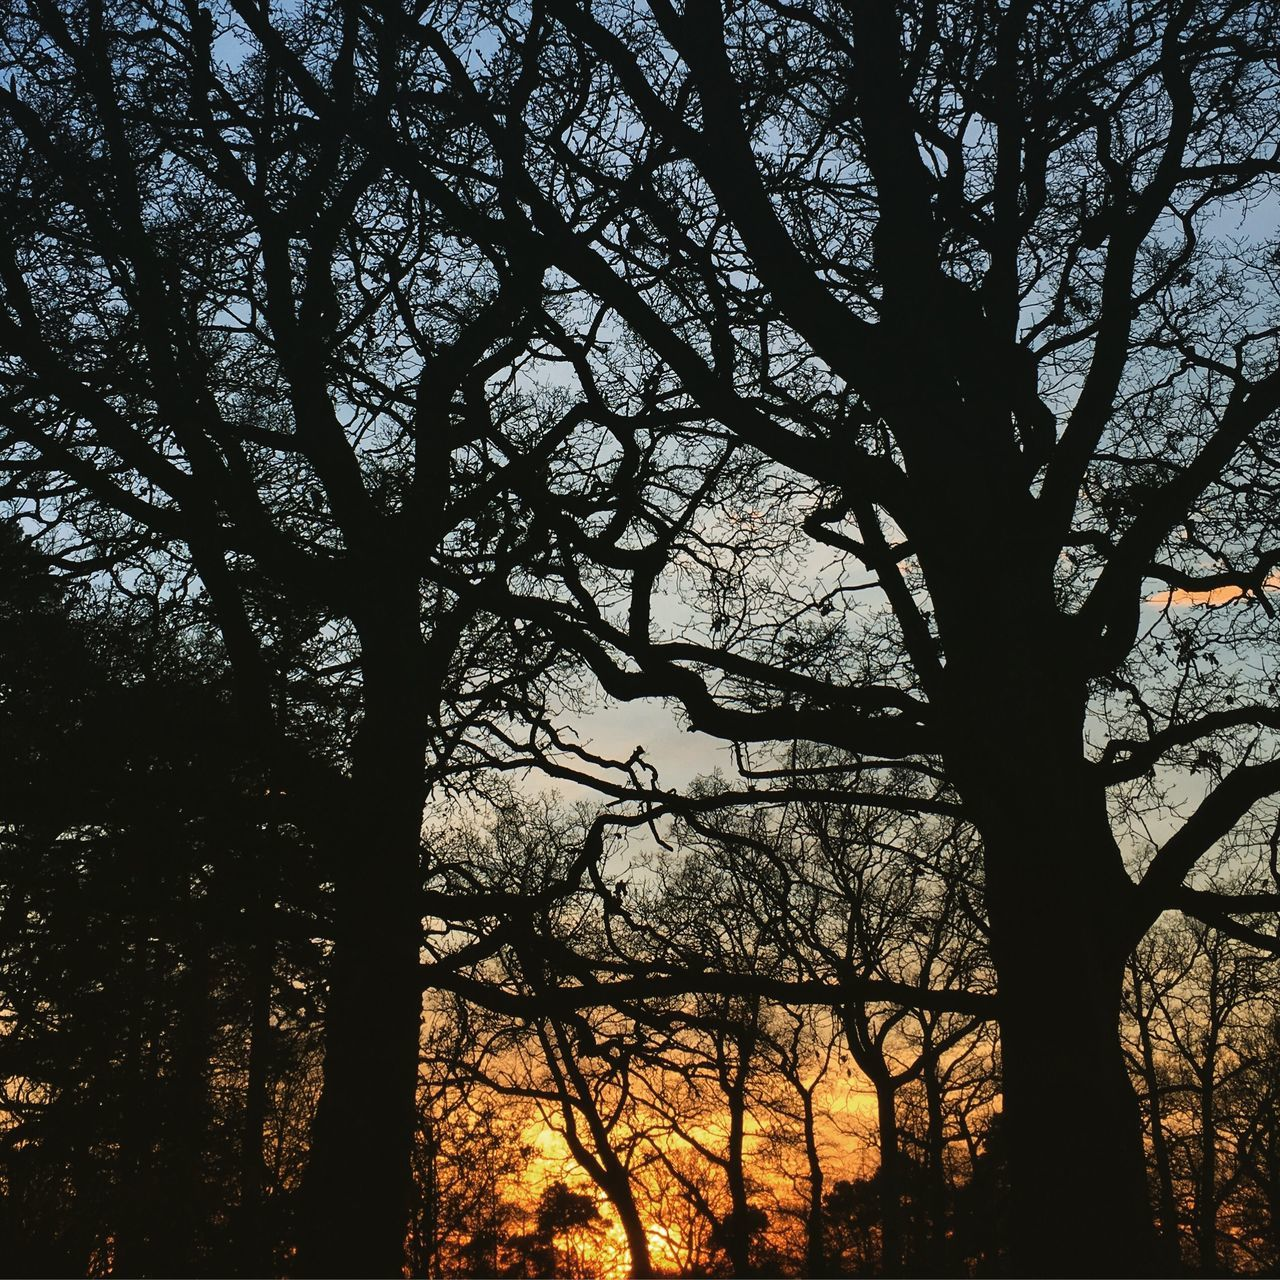 tree, tree trunk, branch, nature, silhouette, beauty in nature, scenics, tranquil scene, tranquility, forest, growth, bare tree, no people, outdoors, day, low angle view, sunset, sky